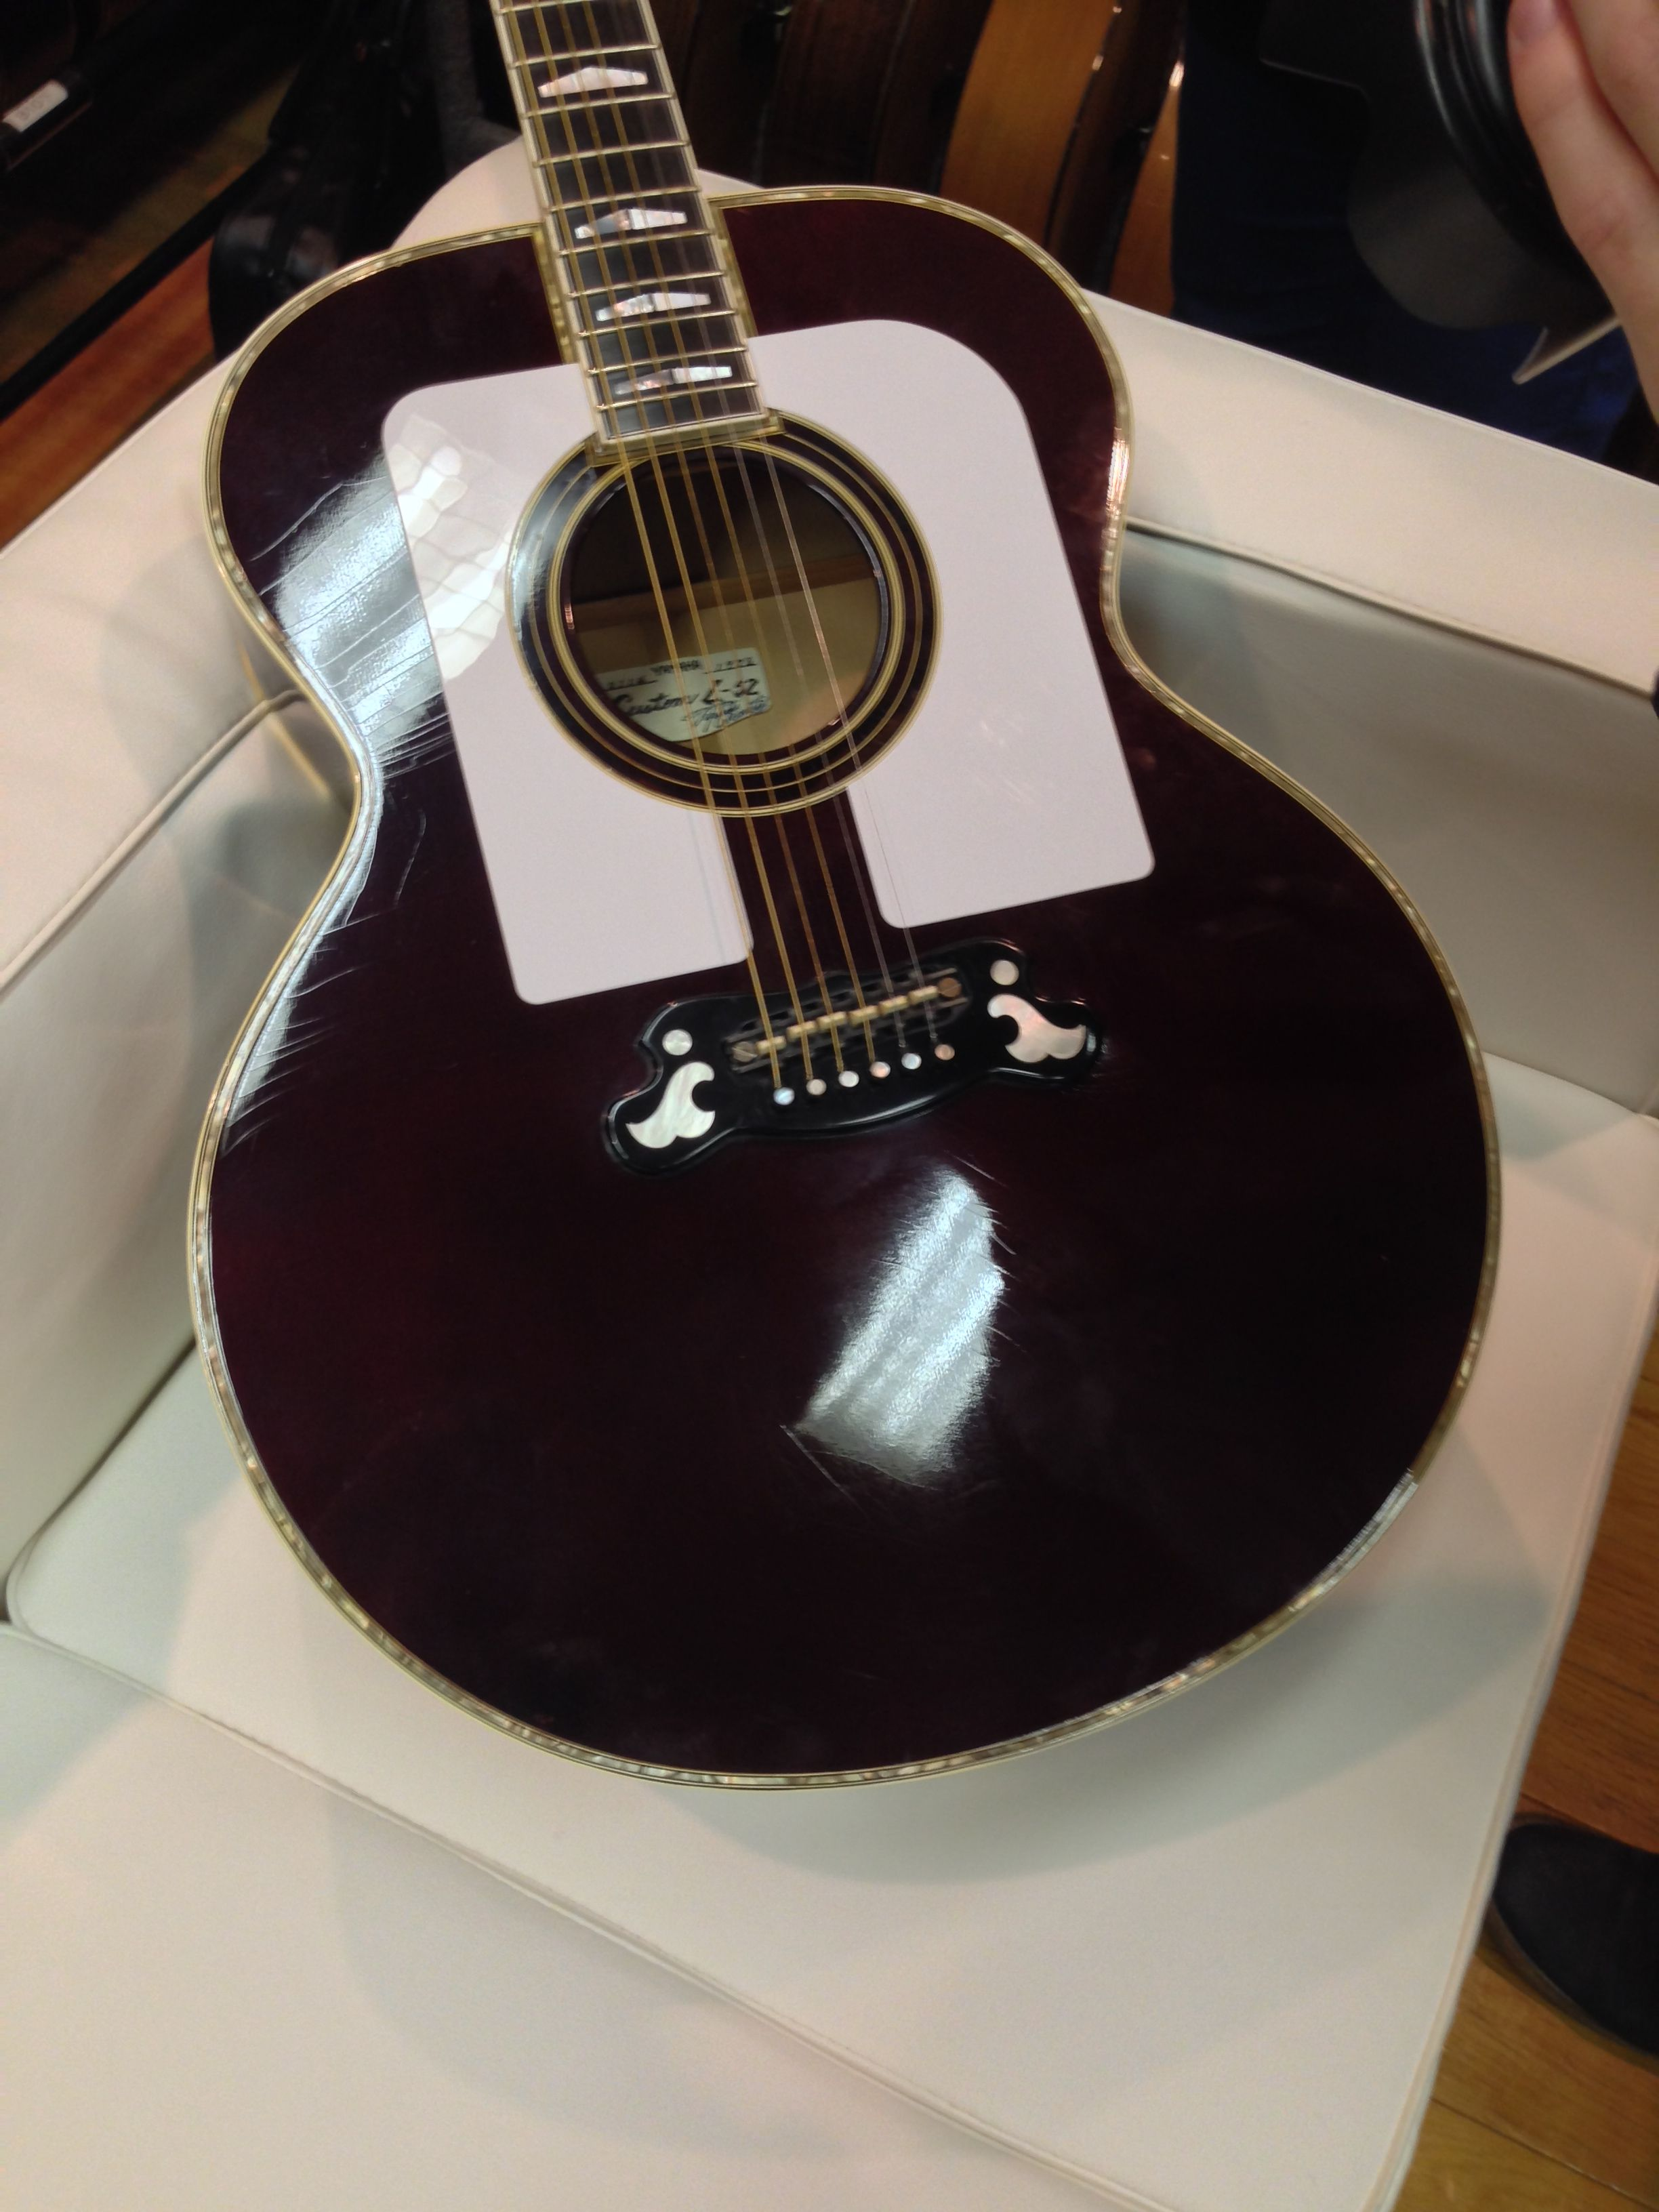 This Guitar Has A Very Special Place In Yamaha History This Exact Guitar Was Chosen By John Lennon Paul Simon A Yamaha Acoustic Guitar Acoustic Guitar Guitar